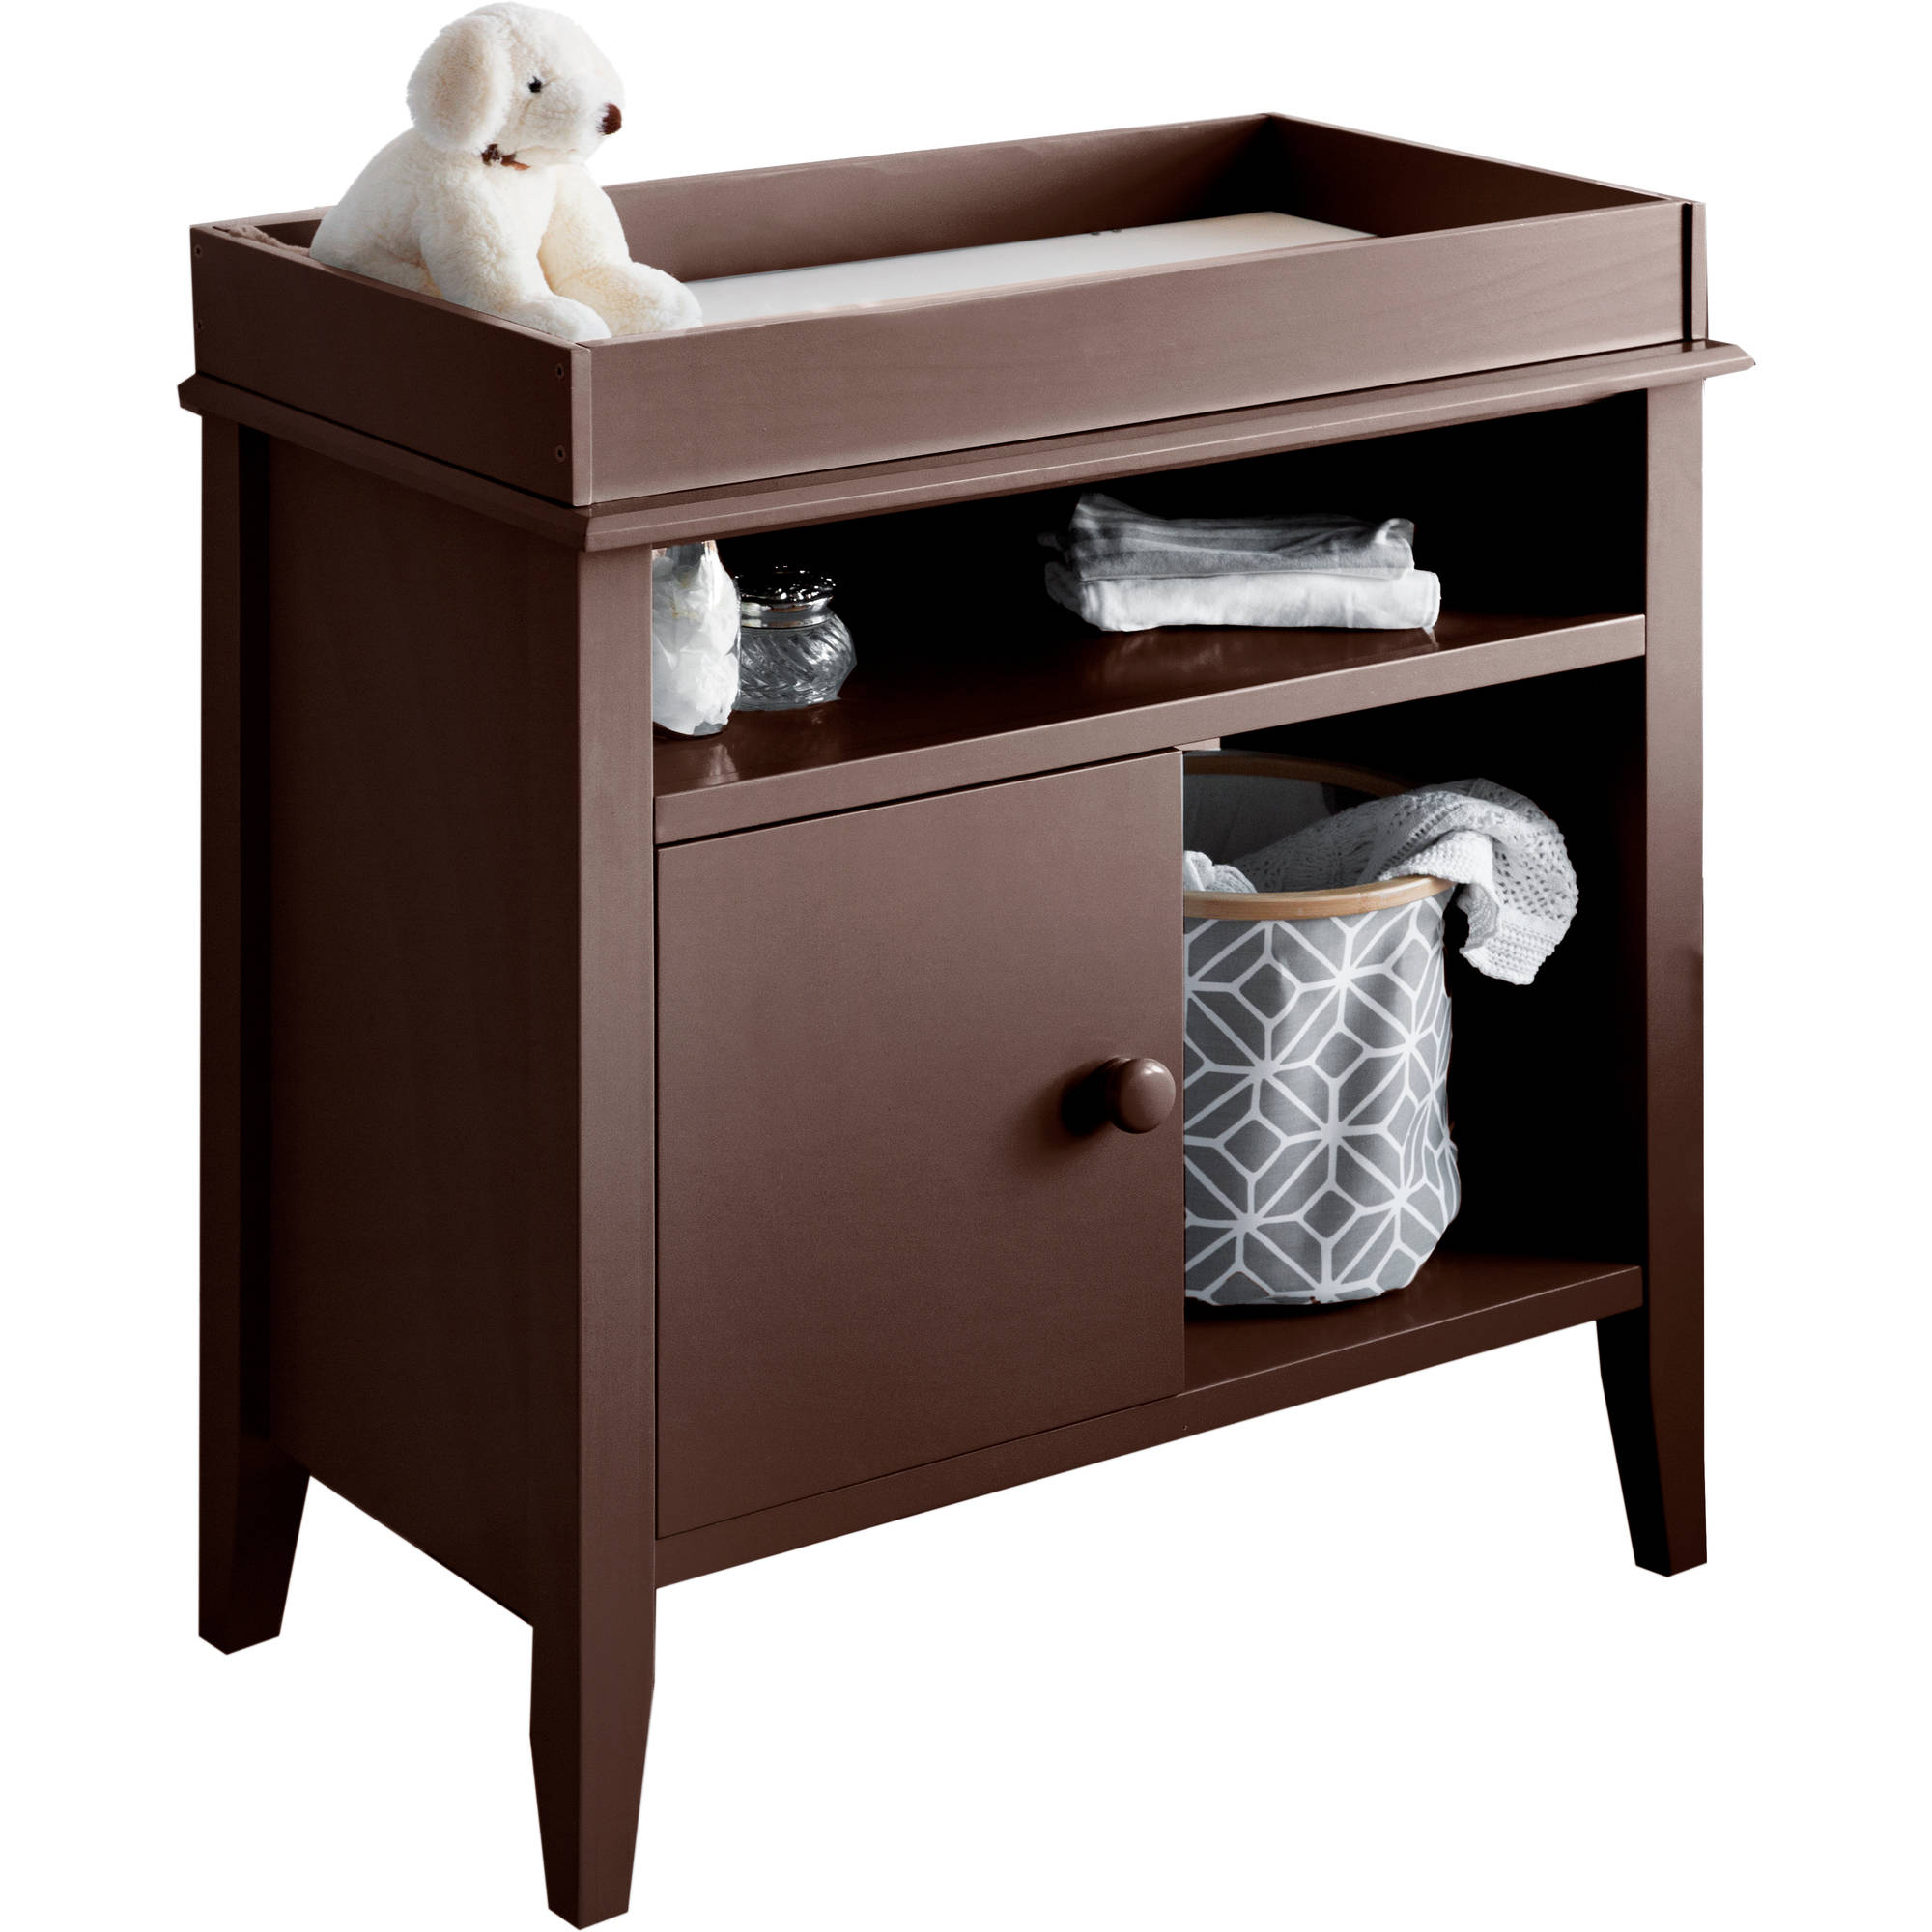 Lolly and Me Universal Changing Table, Espresso